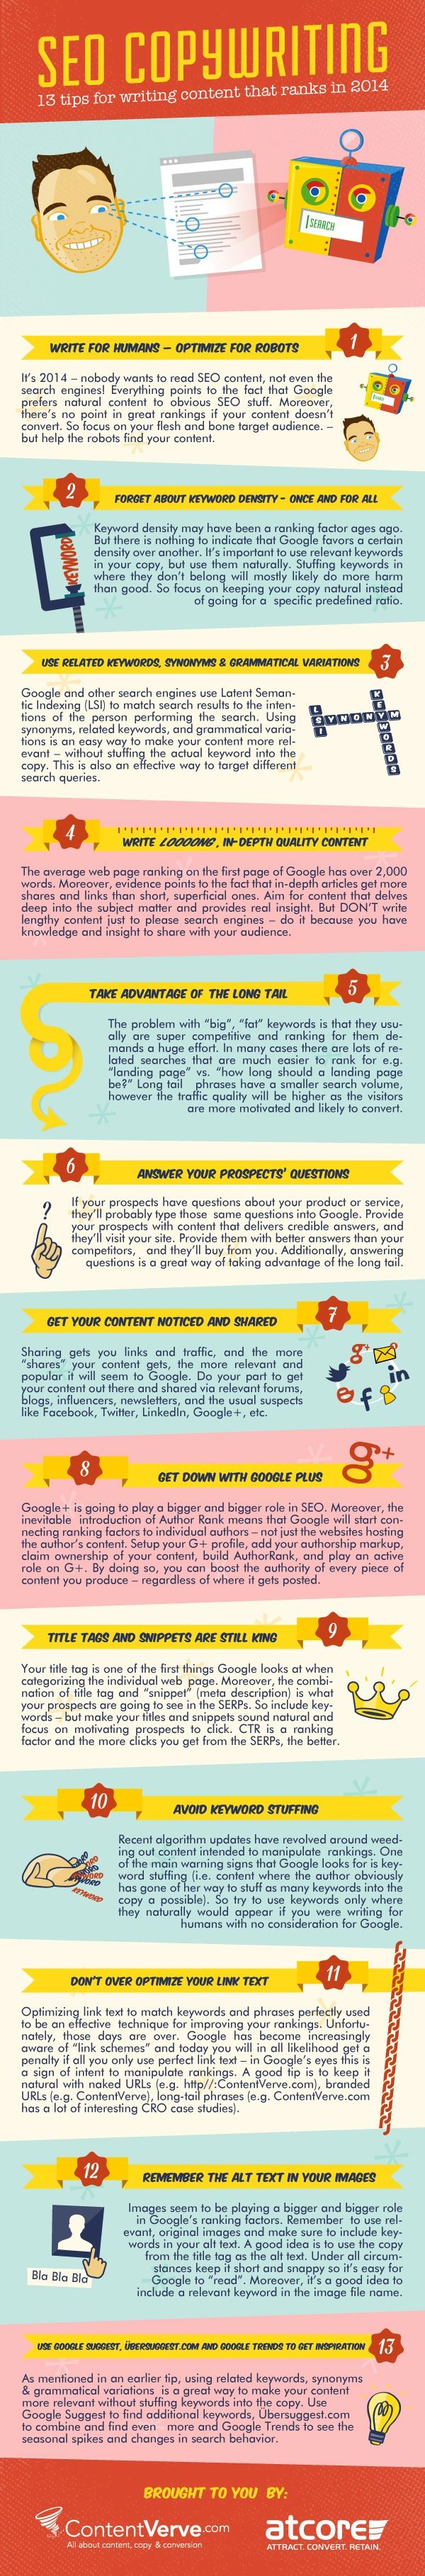 SEO-How-to-write-content-that-ranks-2014_[infographic]: Digital Marketing, Writing Content, Social Media, Search Engine, Infographic